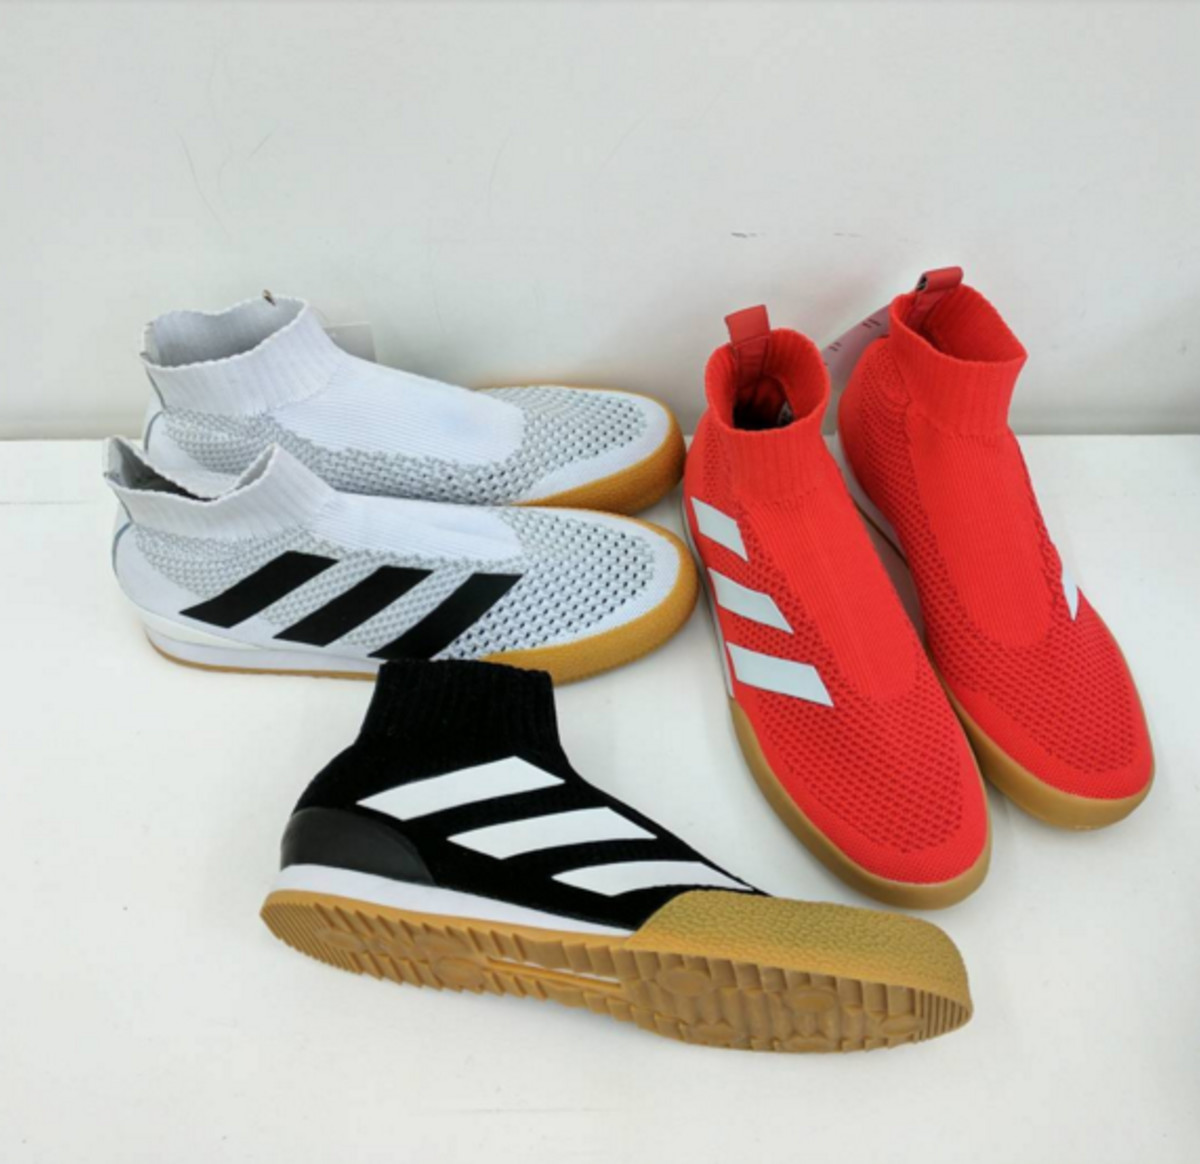 the latest bb9a2 12afe A Close Up Look At the Gosha Rubchinskiy x adidas Football ...